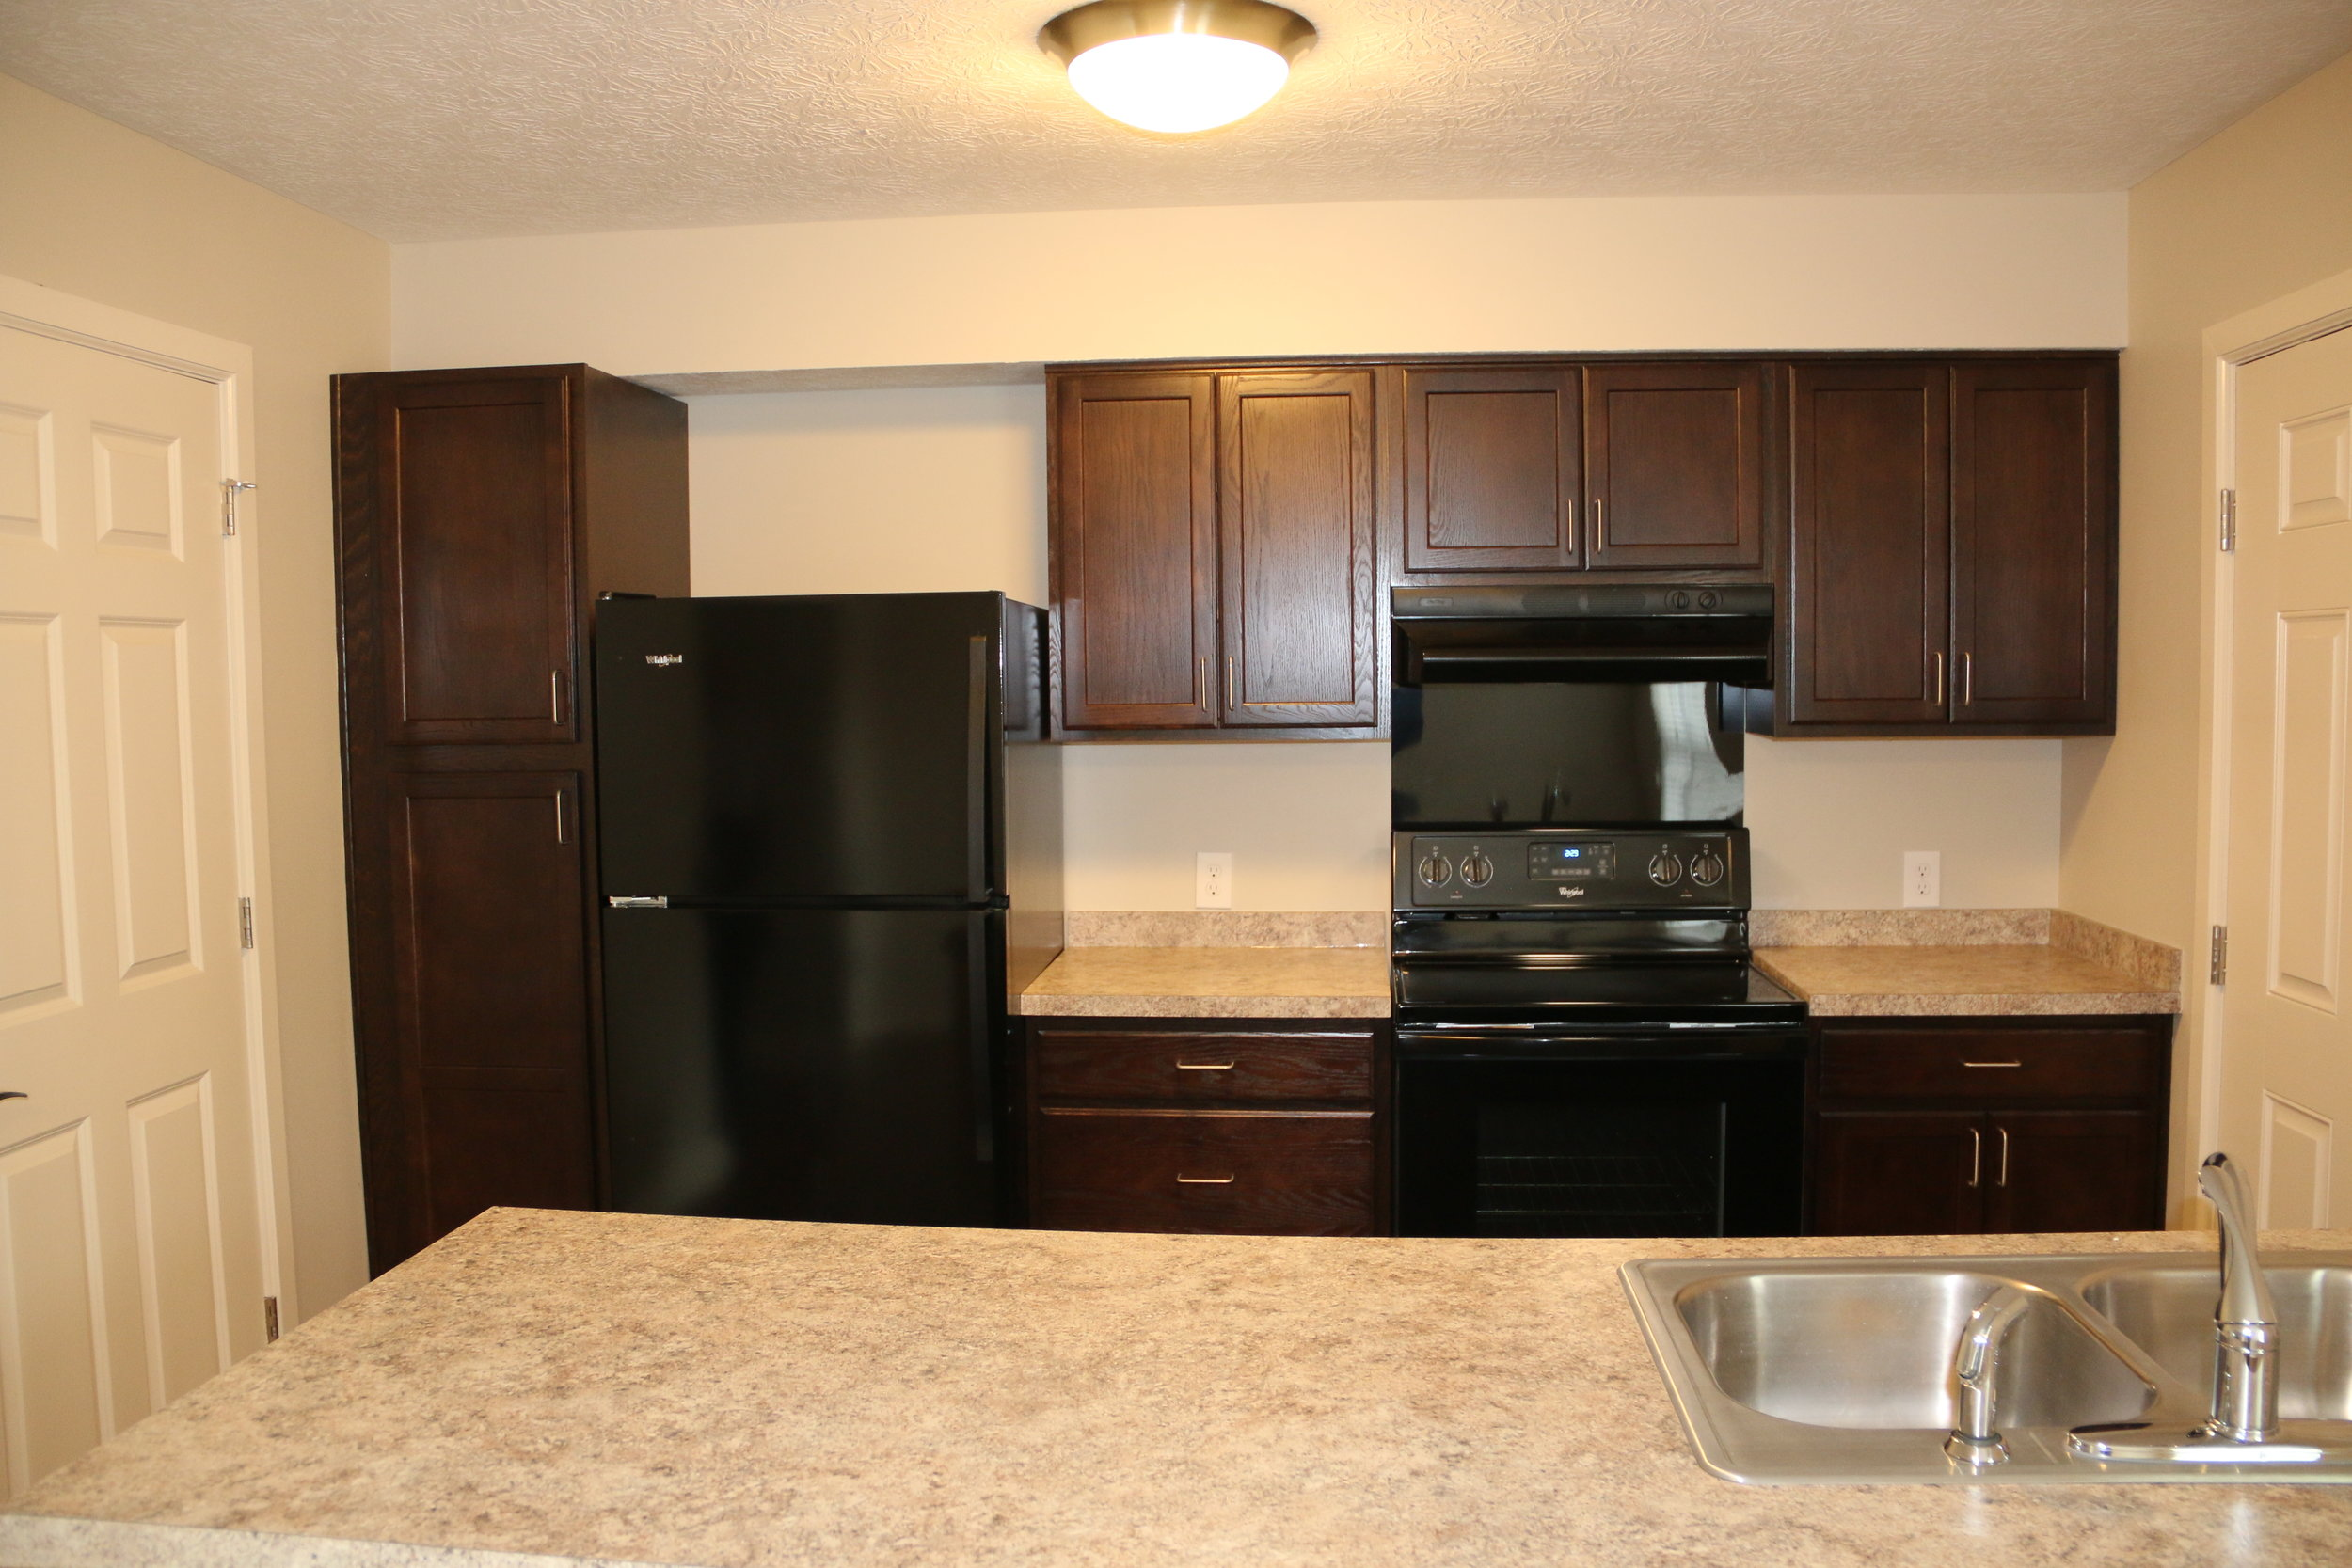 Energy Star rated refrigerator and stove/oven in new Milo-Grogan home.